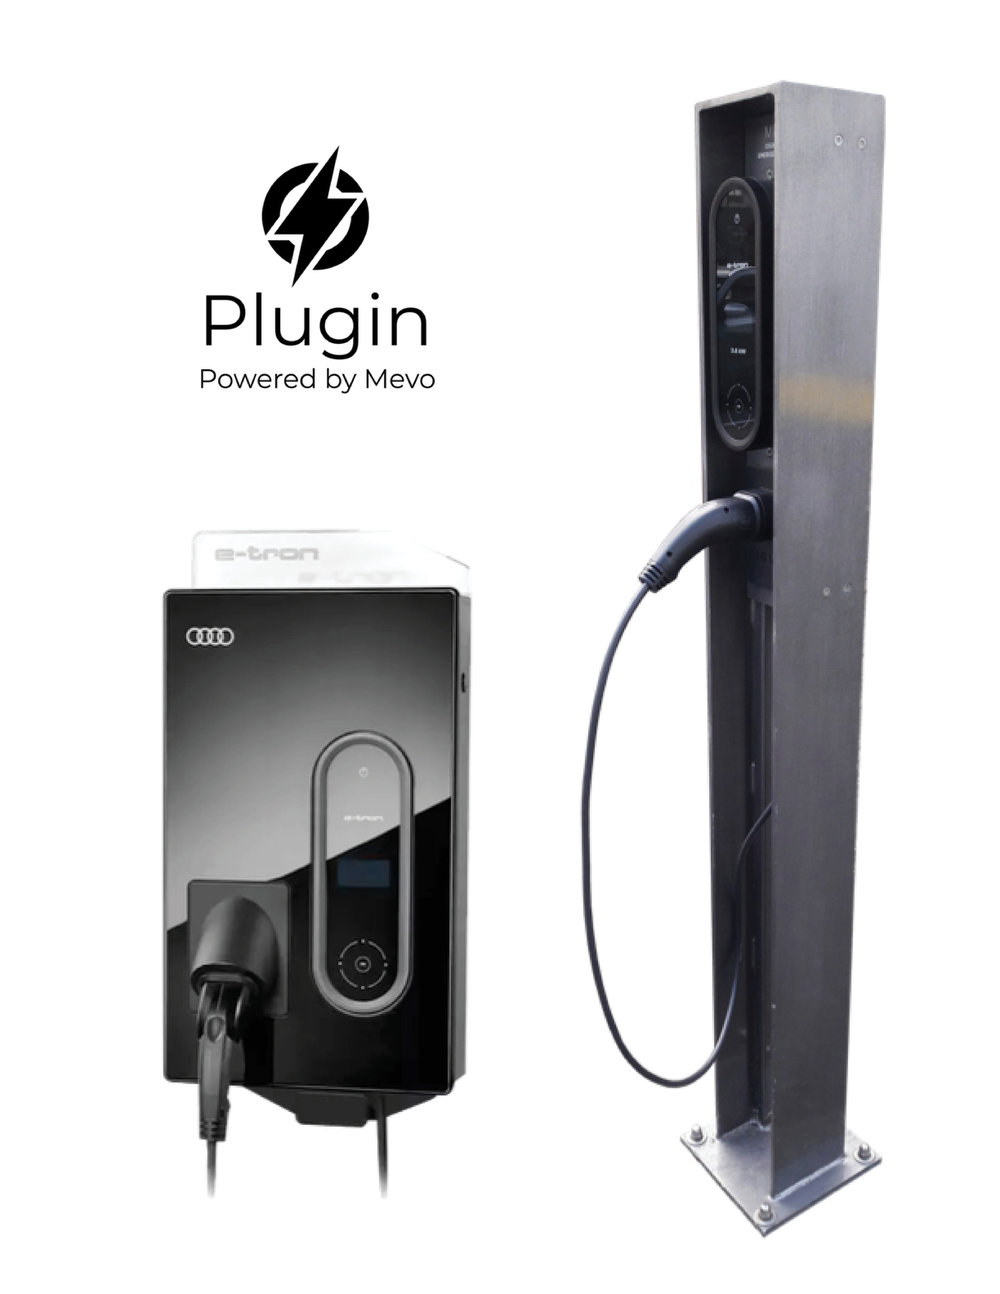 Charger specs: 16A @ 230V, single phase (3.6kW) type 2 EV plug (NZ standard). Higher speed chargers available on request. Chargers come in free-standing and wall amount formats.